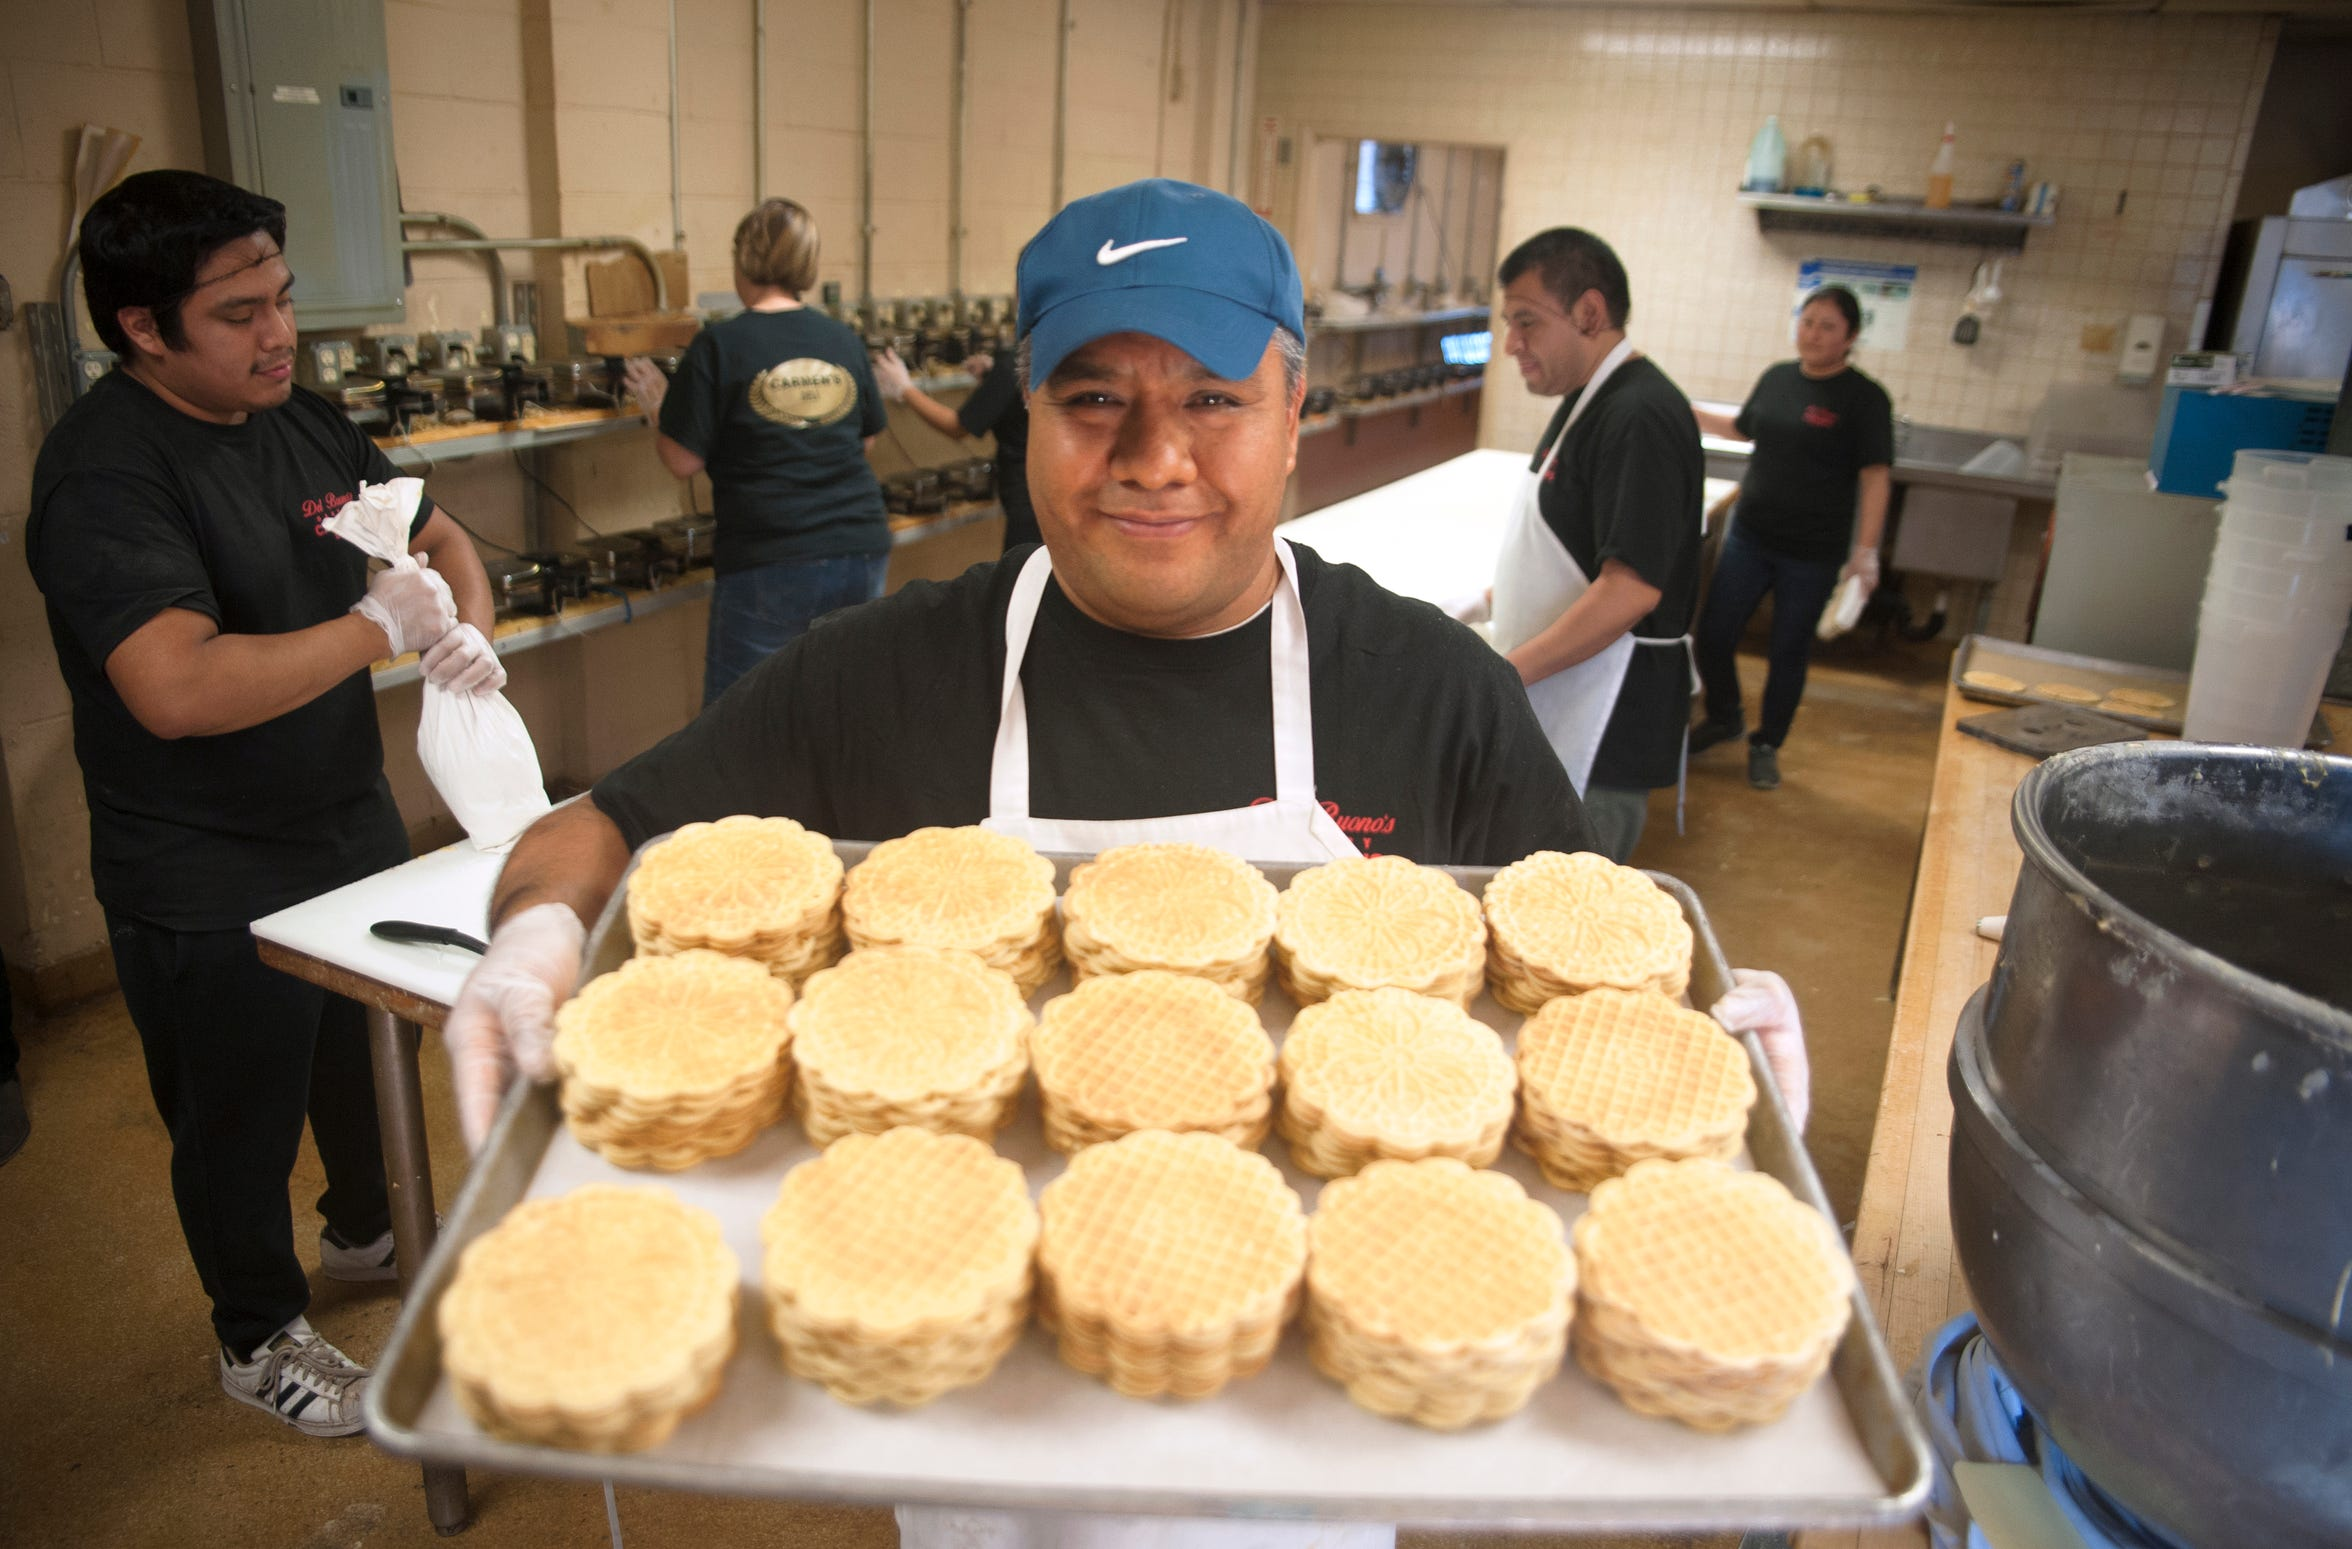 Chief baker Victor Regino displays a tray of freshly baked pizzelle at Del Buono's Pizzelle Company in Bellmawr.